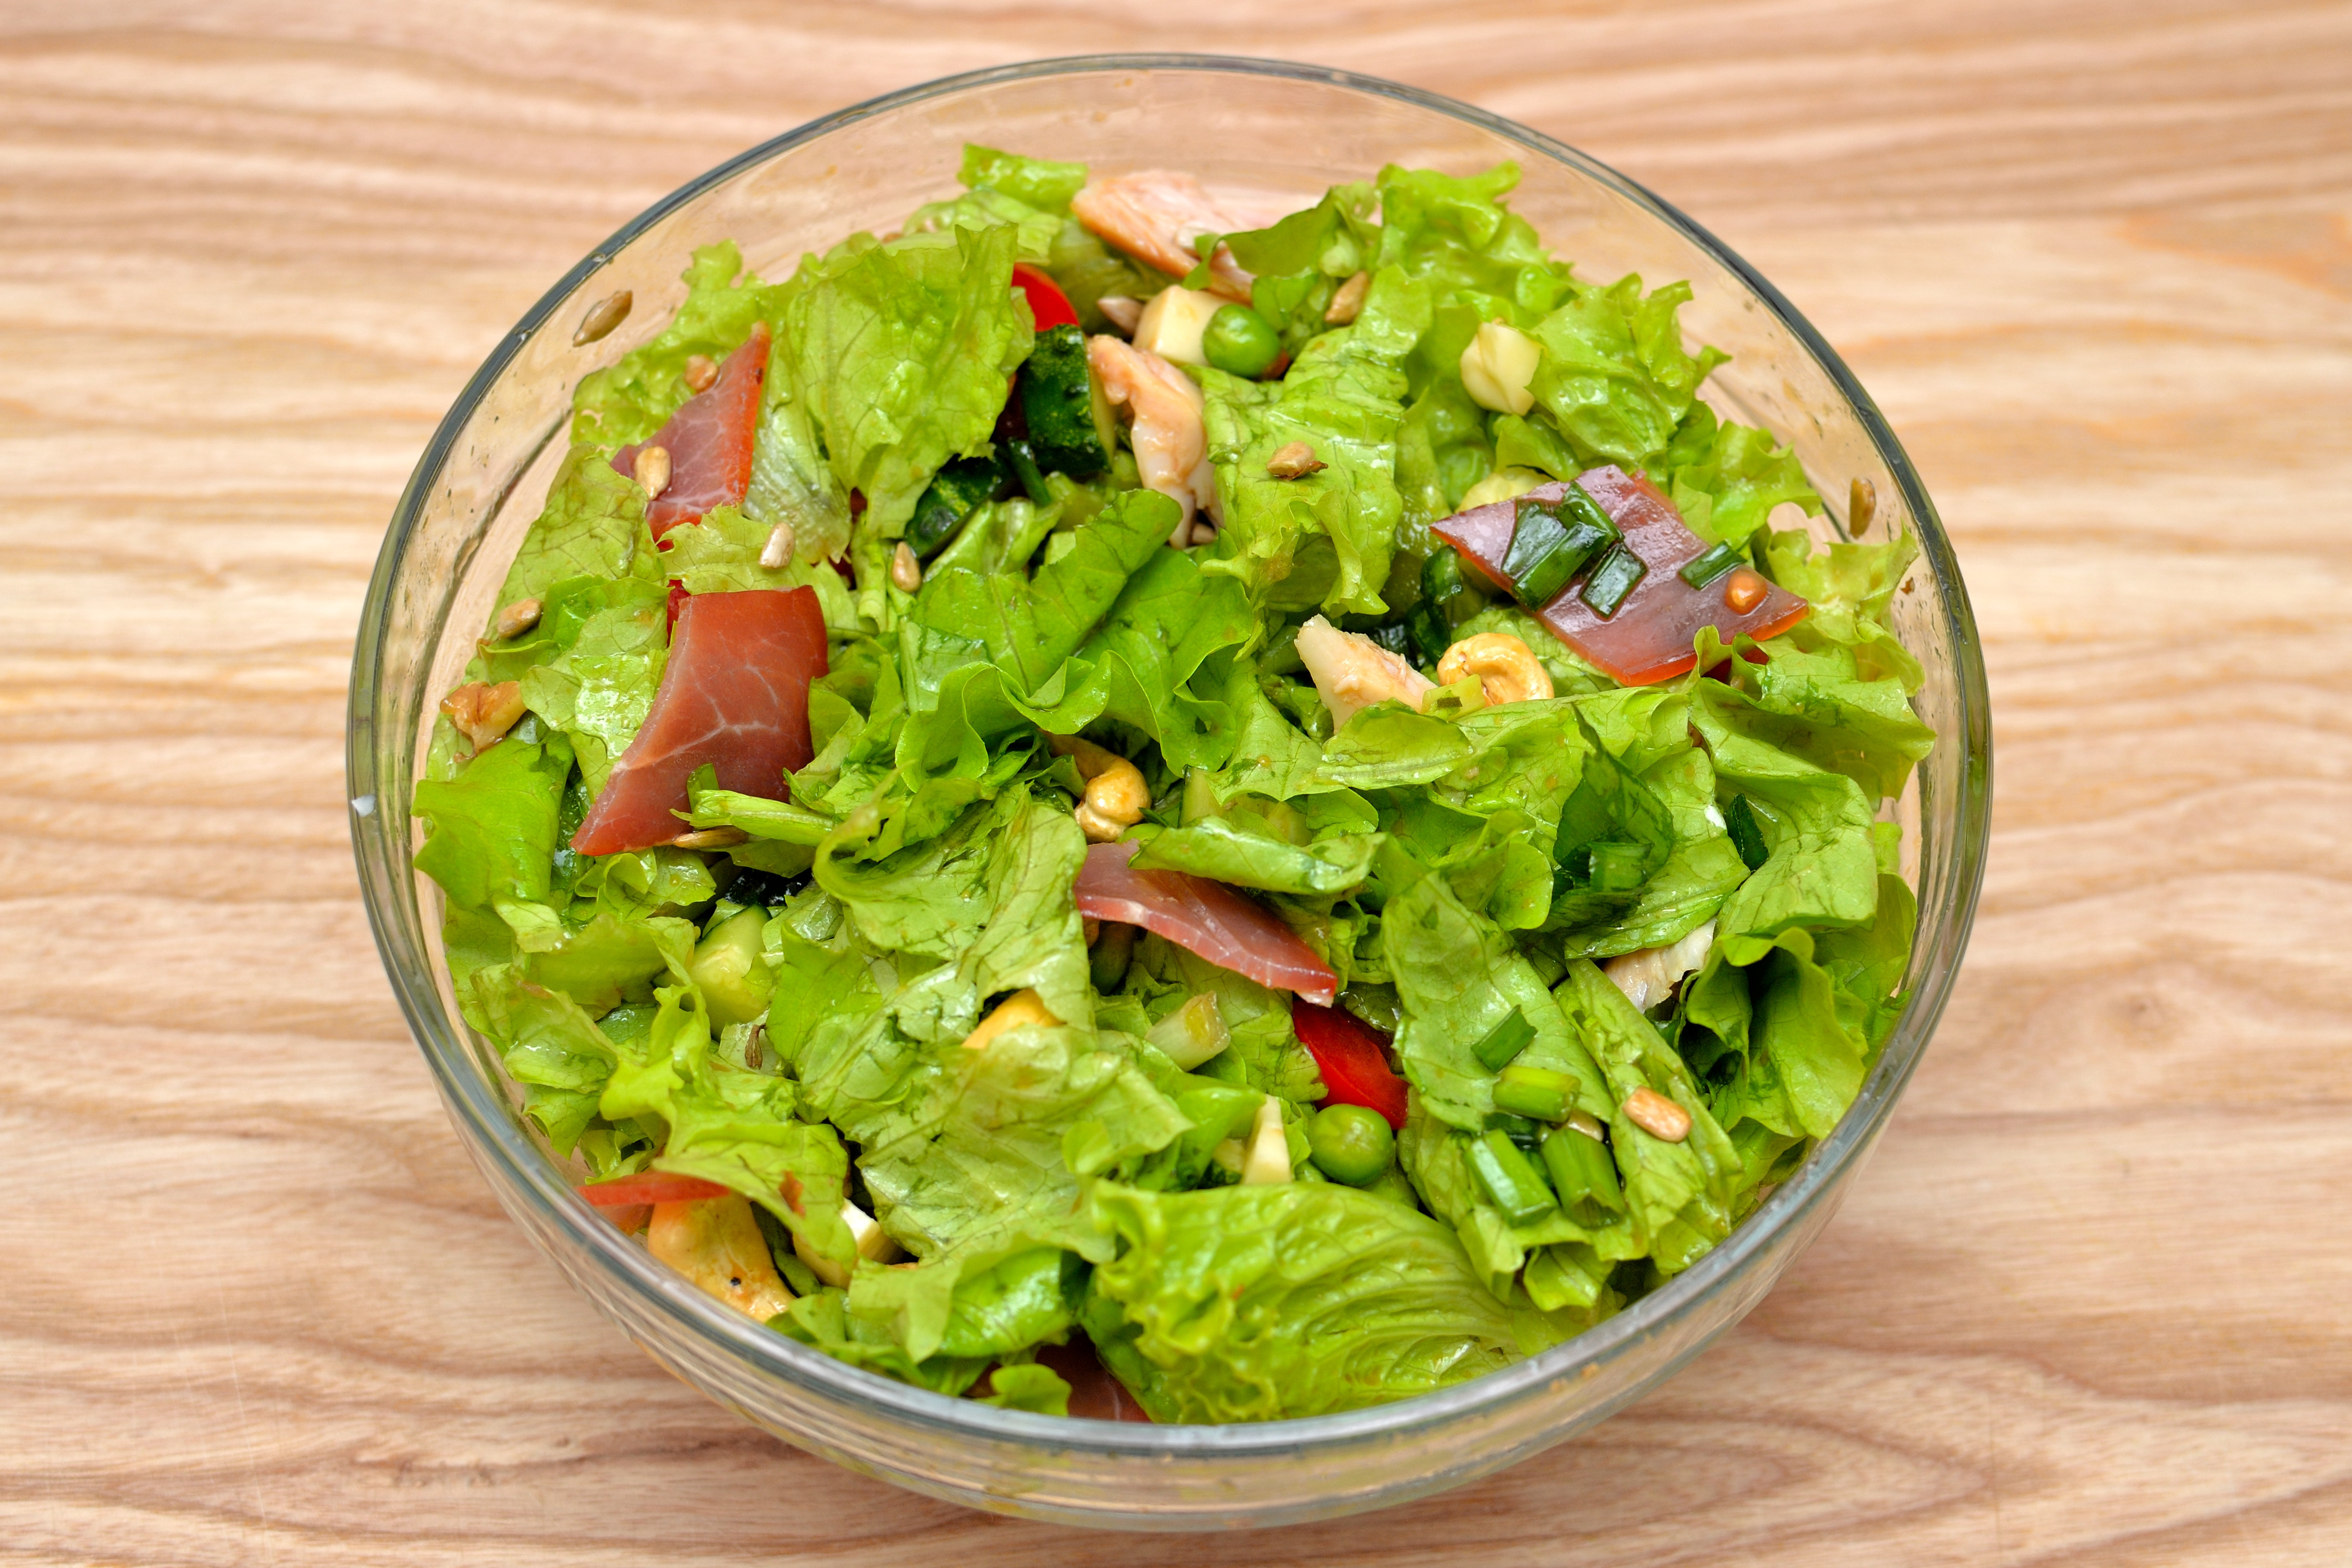 Healthy Salads To Eat  How to Make a Healthy Salad that Tastes Good 8 Steps